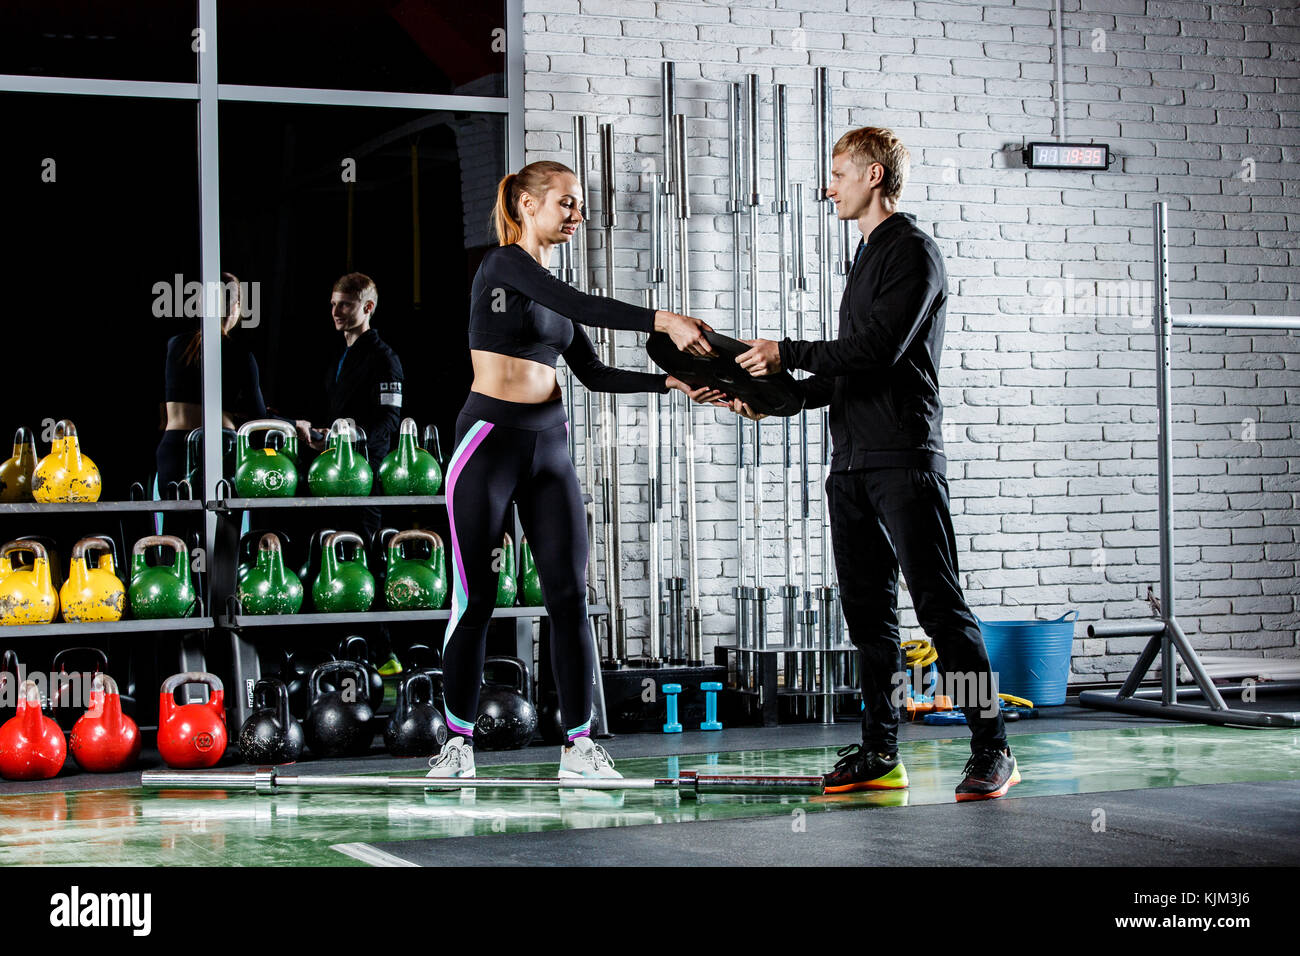 the coach gives a steel pancake to a young girl to perform exercises in the gym - Stock Image